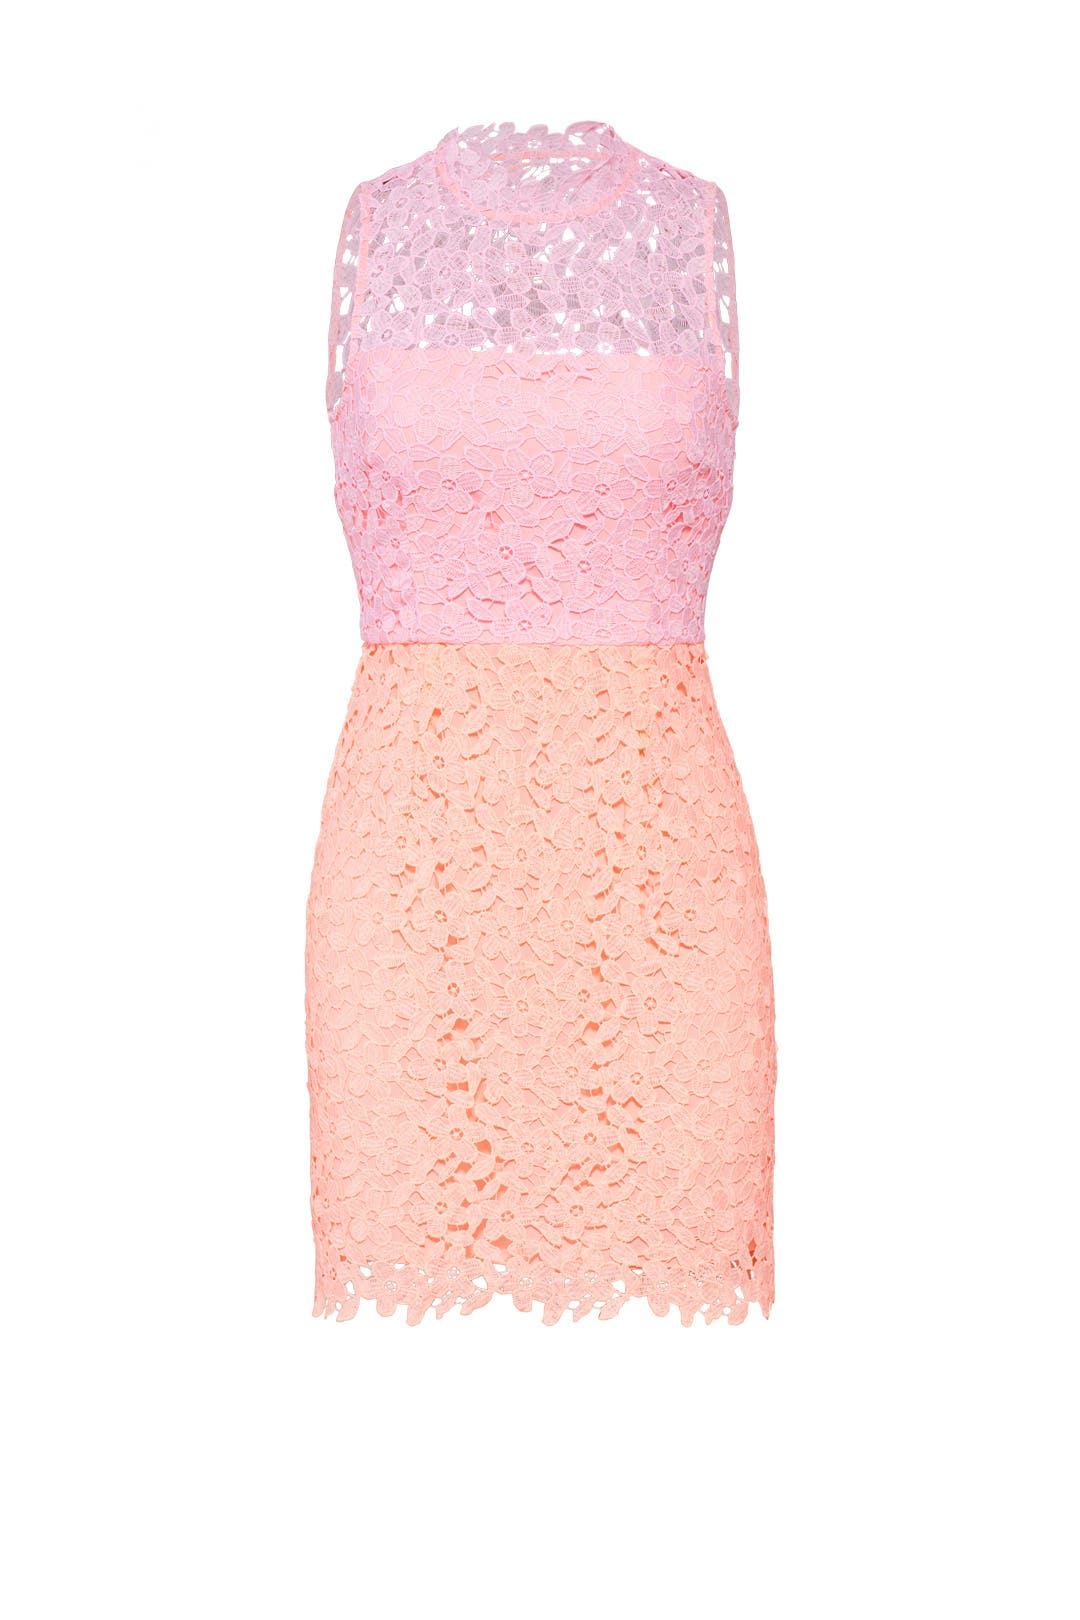 Pink Lace Colorblock Dress by Slate & Willow for $30 - $35 | Rent ...